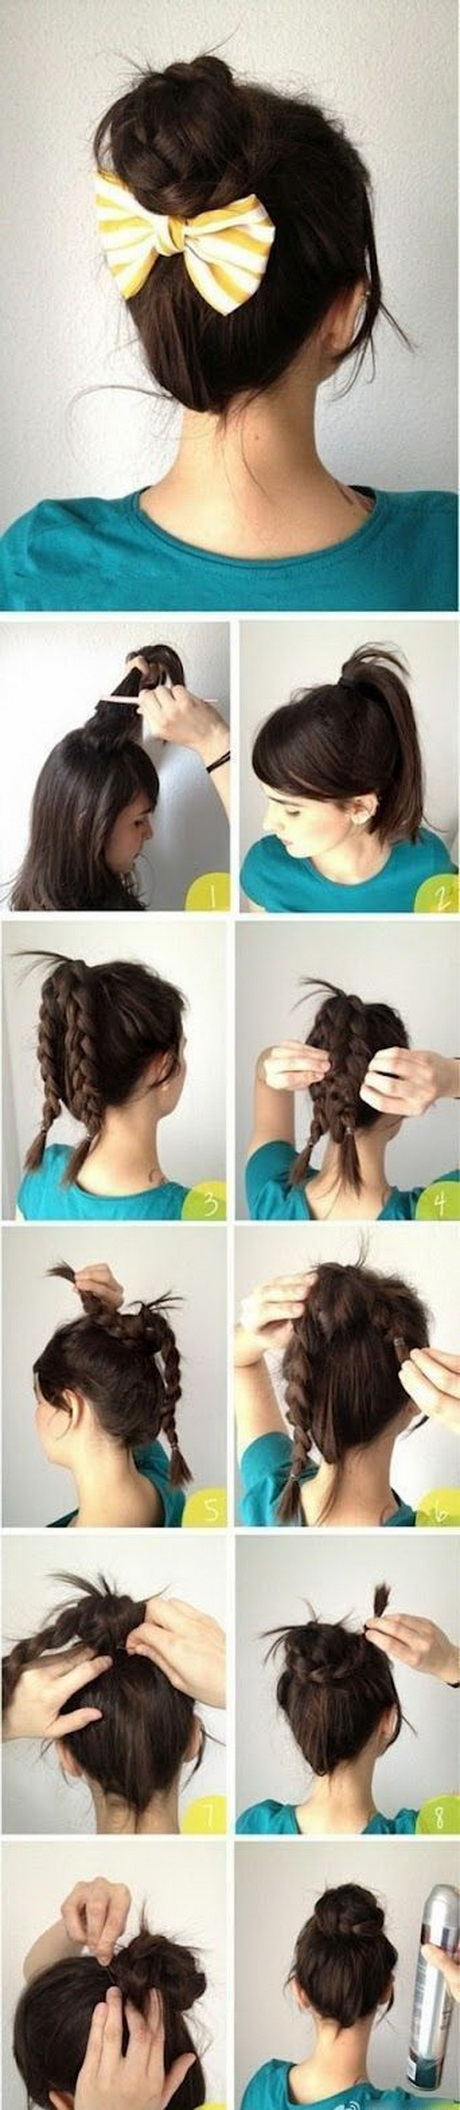 Hairstyles For Long Hair Videos Download : Download Diy Hairstyles For Long Hair Pinterest Pictures to pin on ...